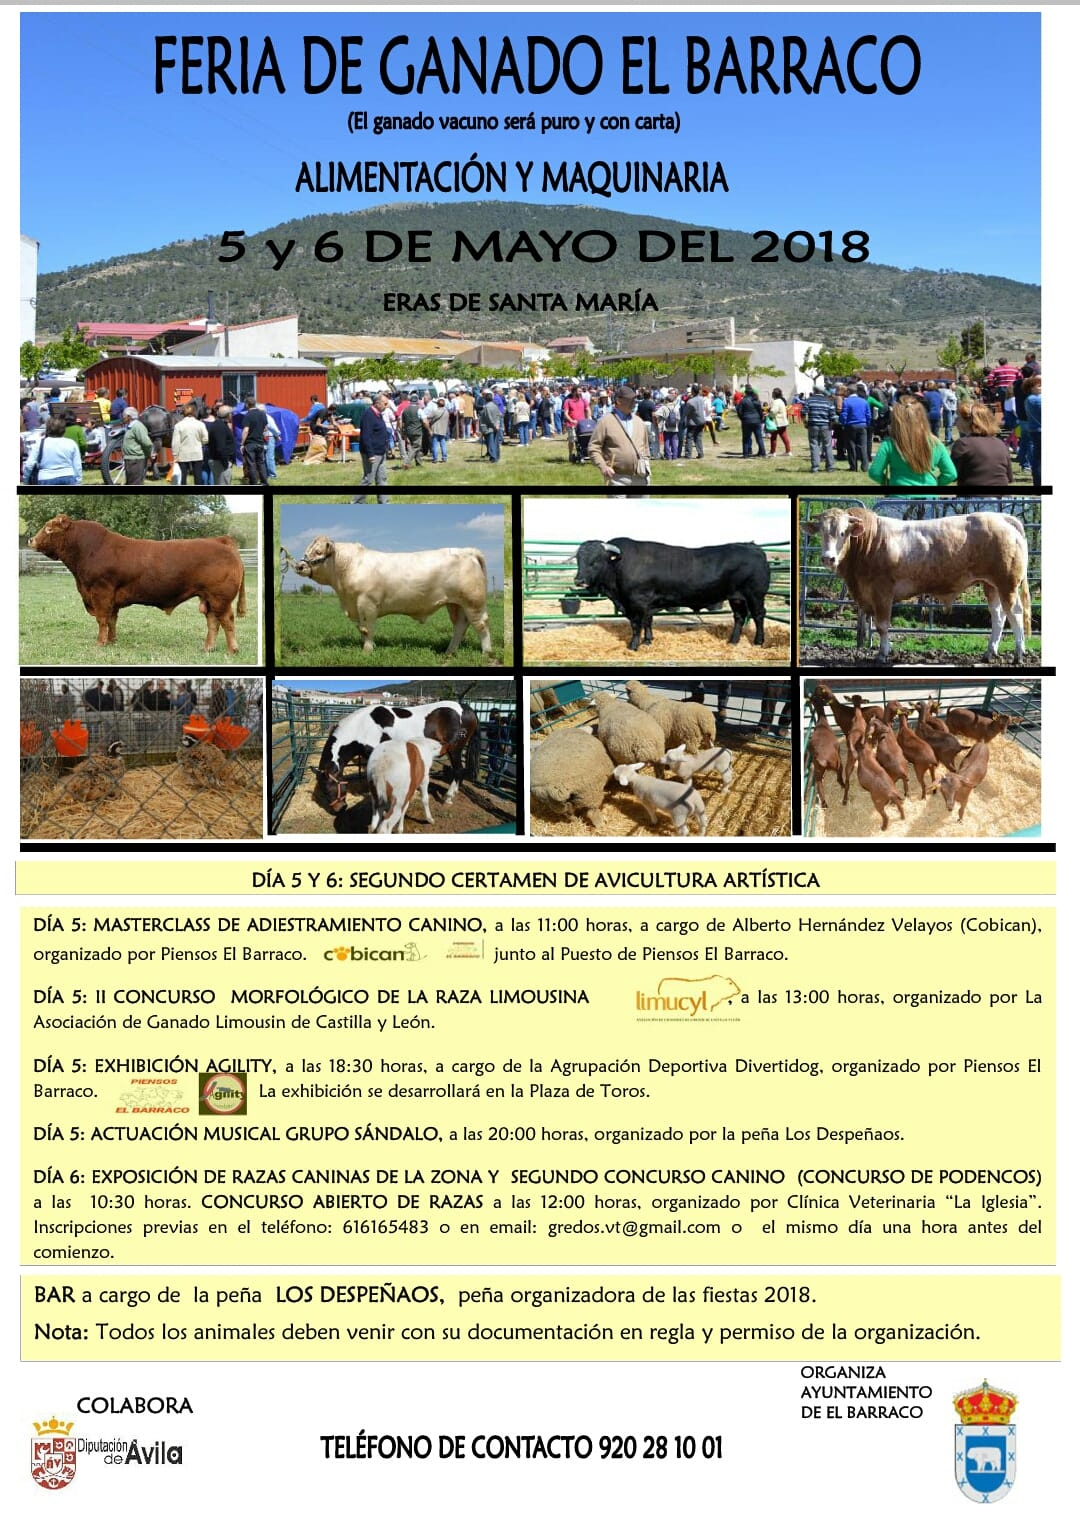 FERIA EL BARRACO 2018